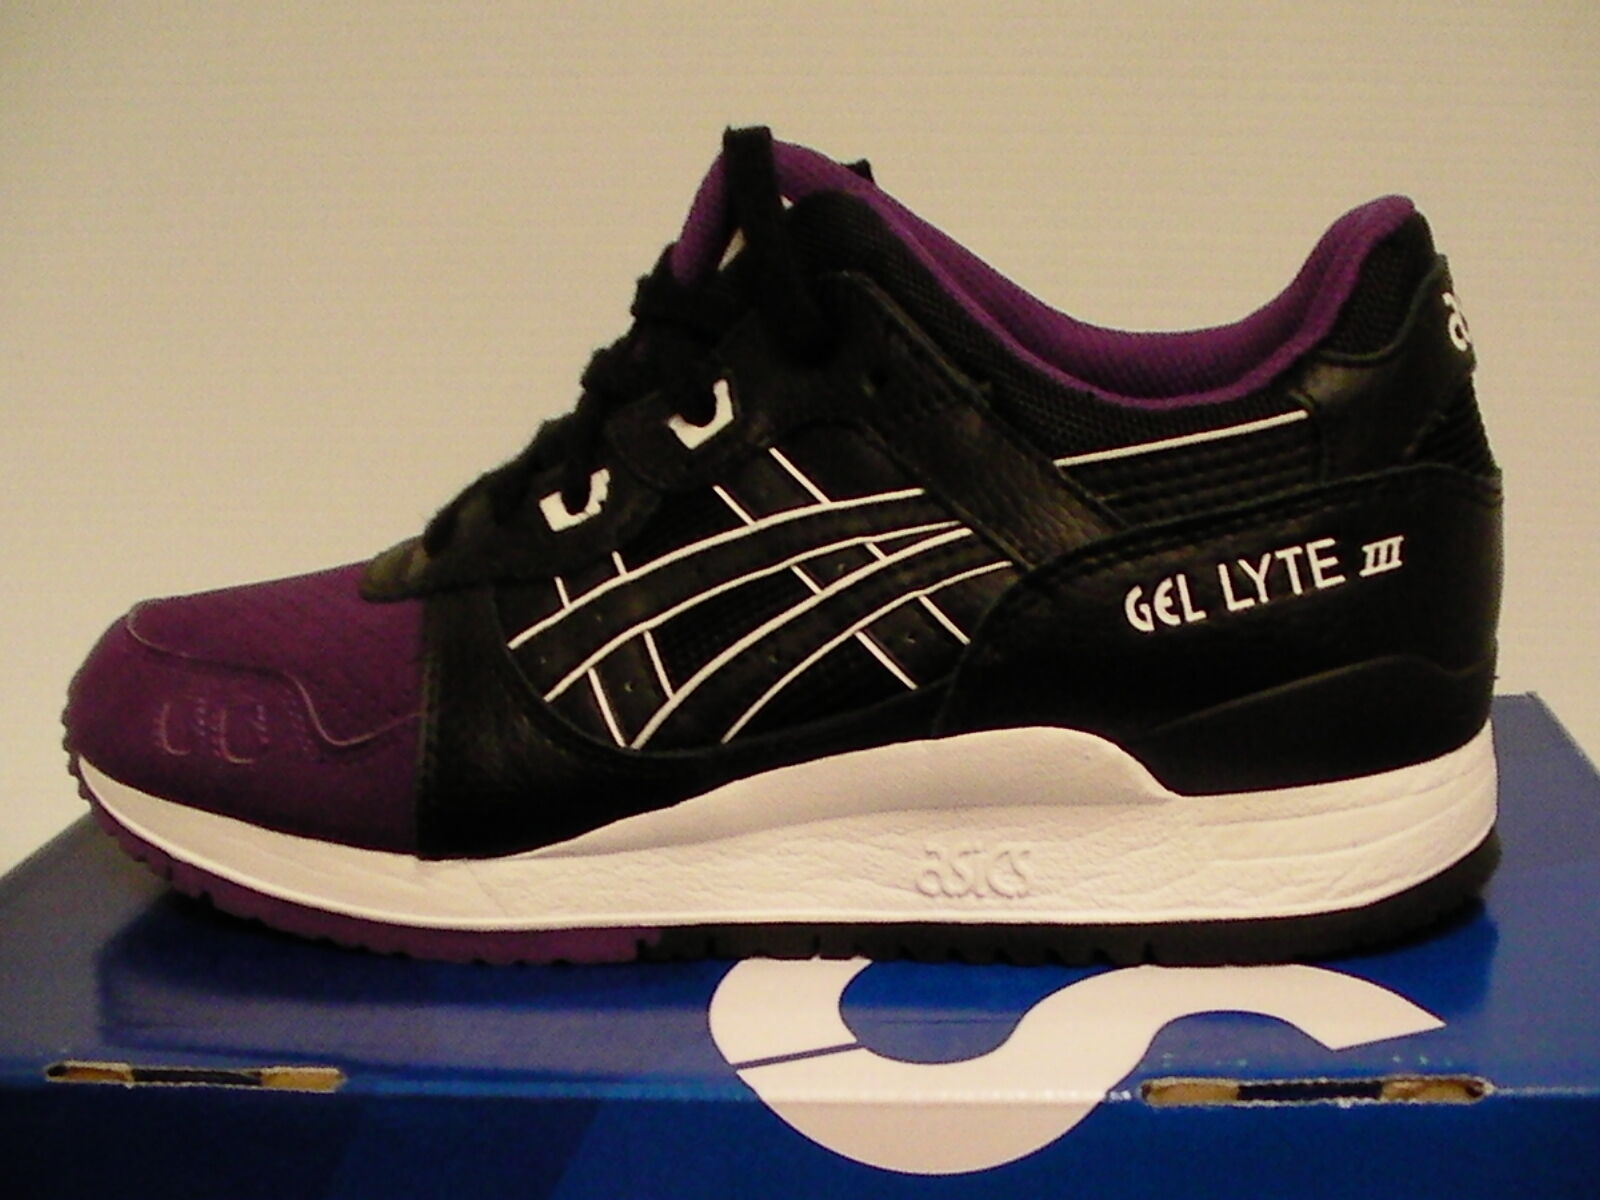 Asics running shoes us gel-lyte iii size 7.5 us shoes men purple/black new with box 0d8ea6